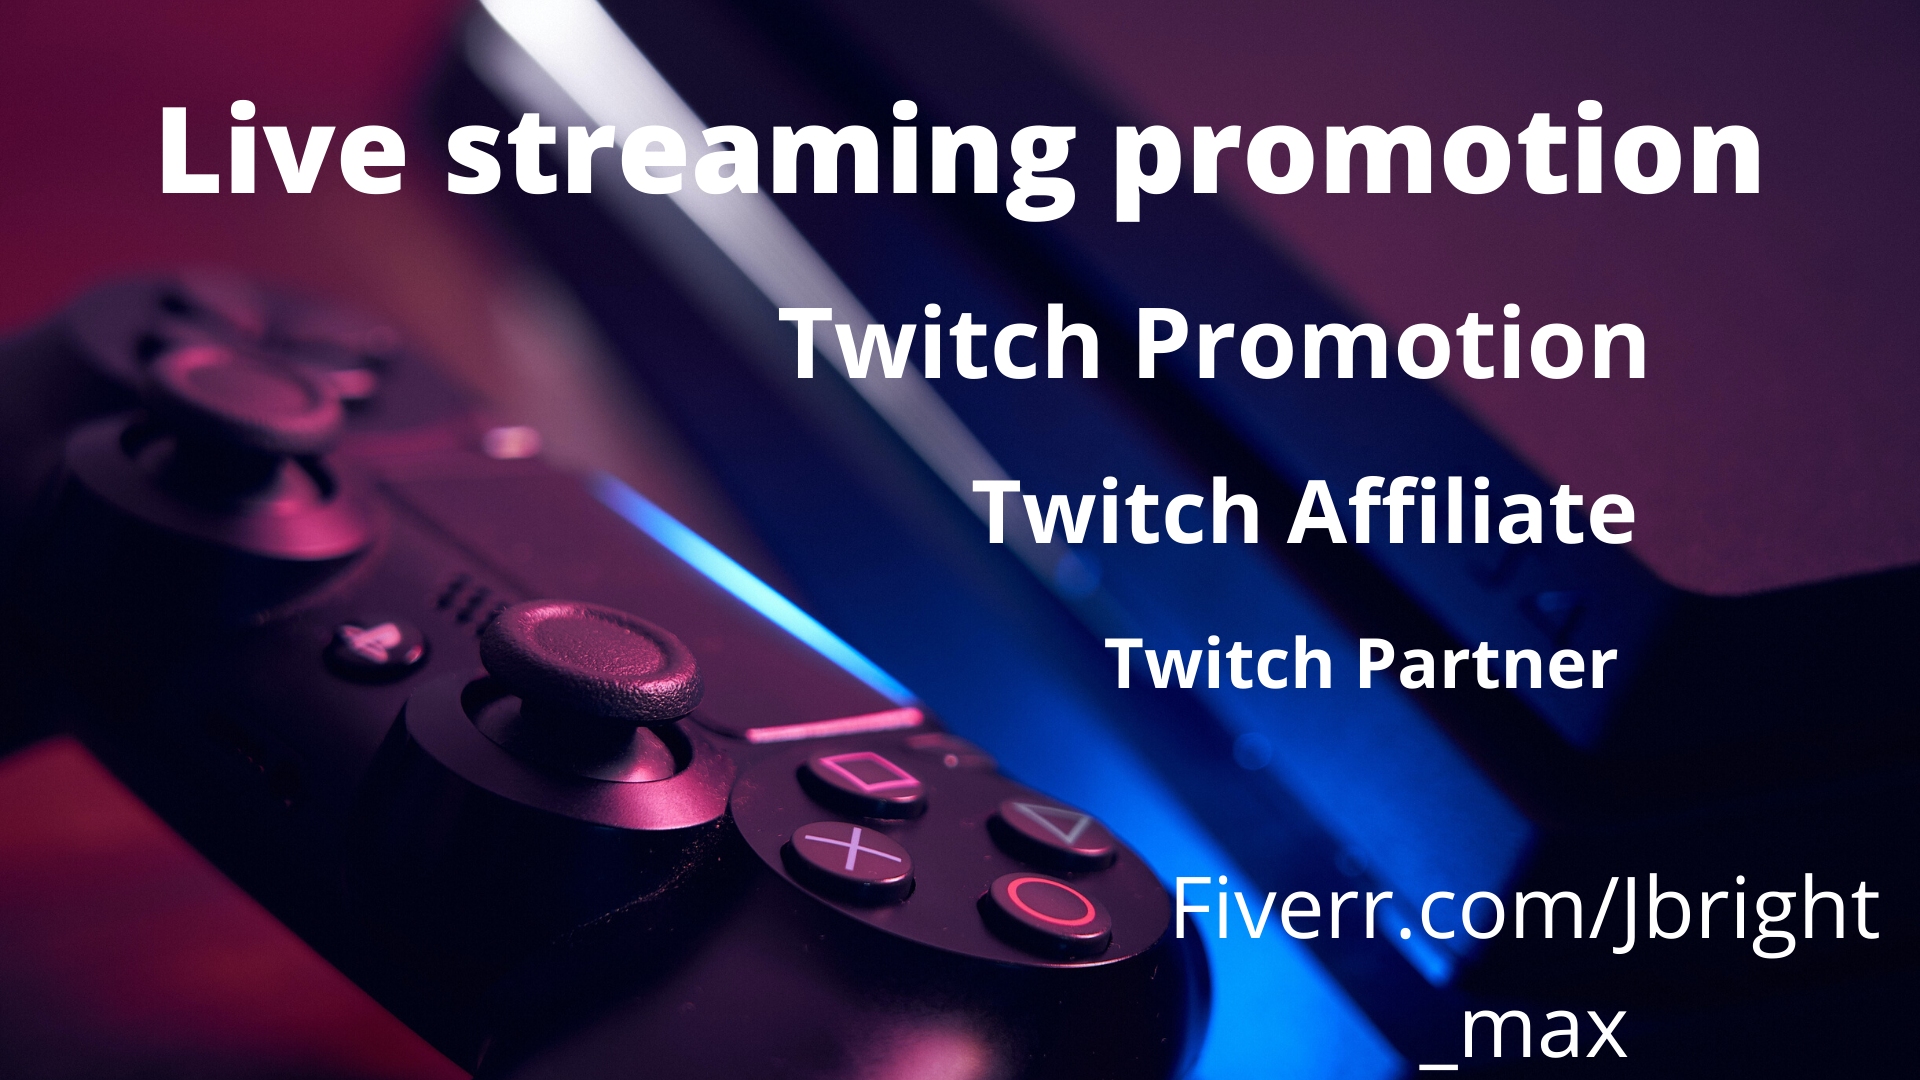 I will do extensive promotions to boost engagement on your twitch channel, FiverrBox